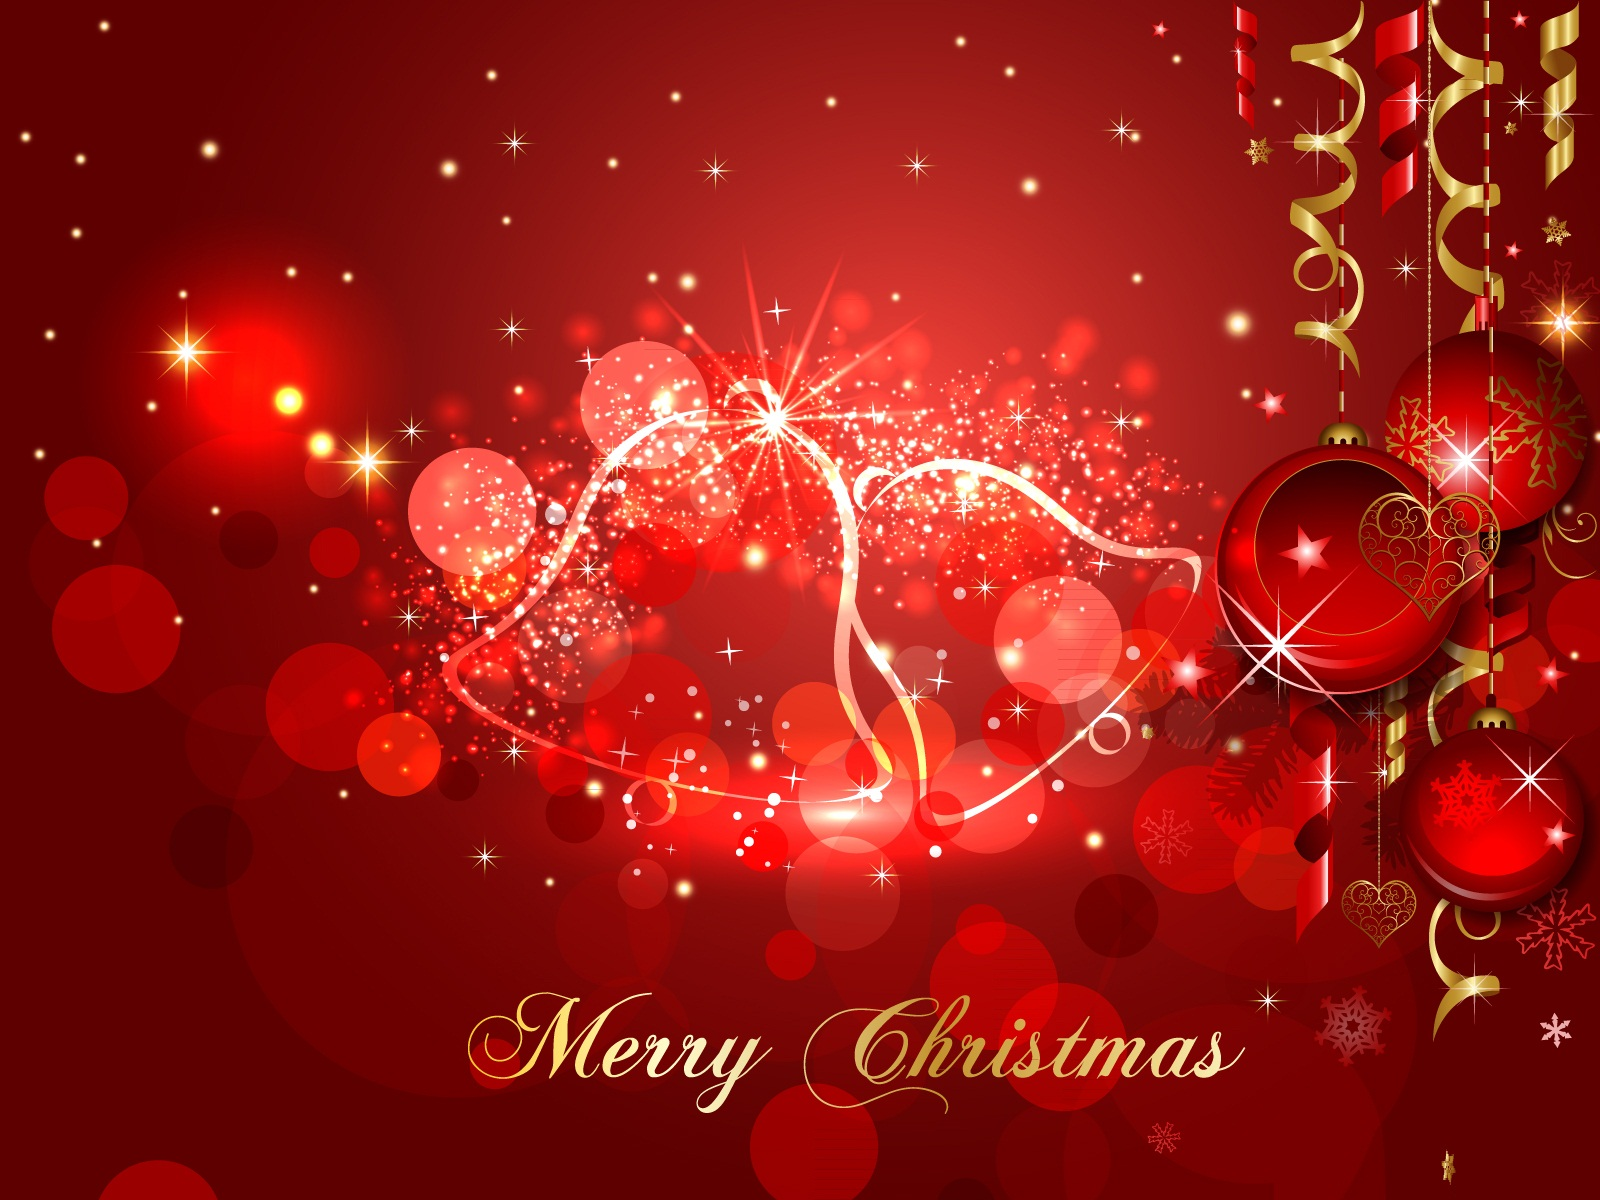 wallpaper 03 merry christmas wallpaper 04 merry christmas wallpaper 05